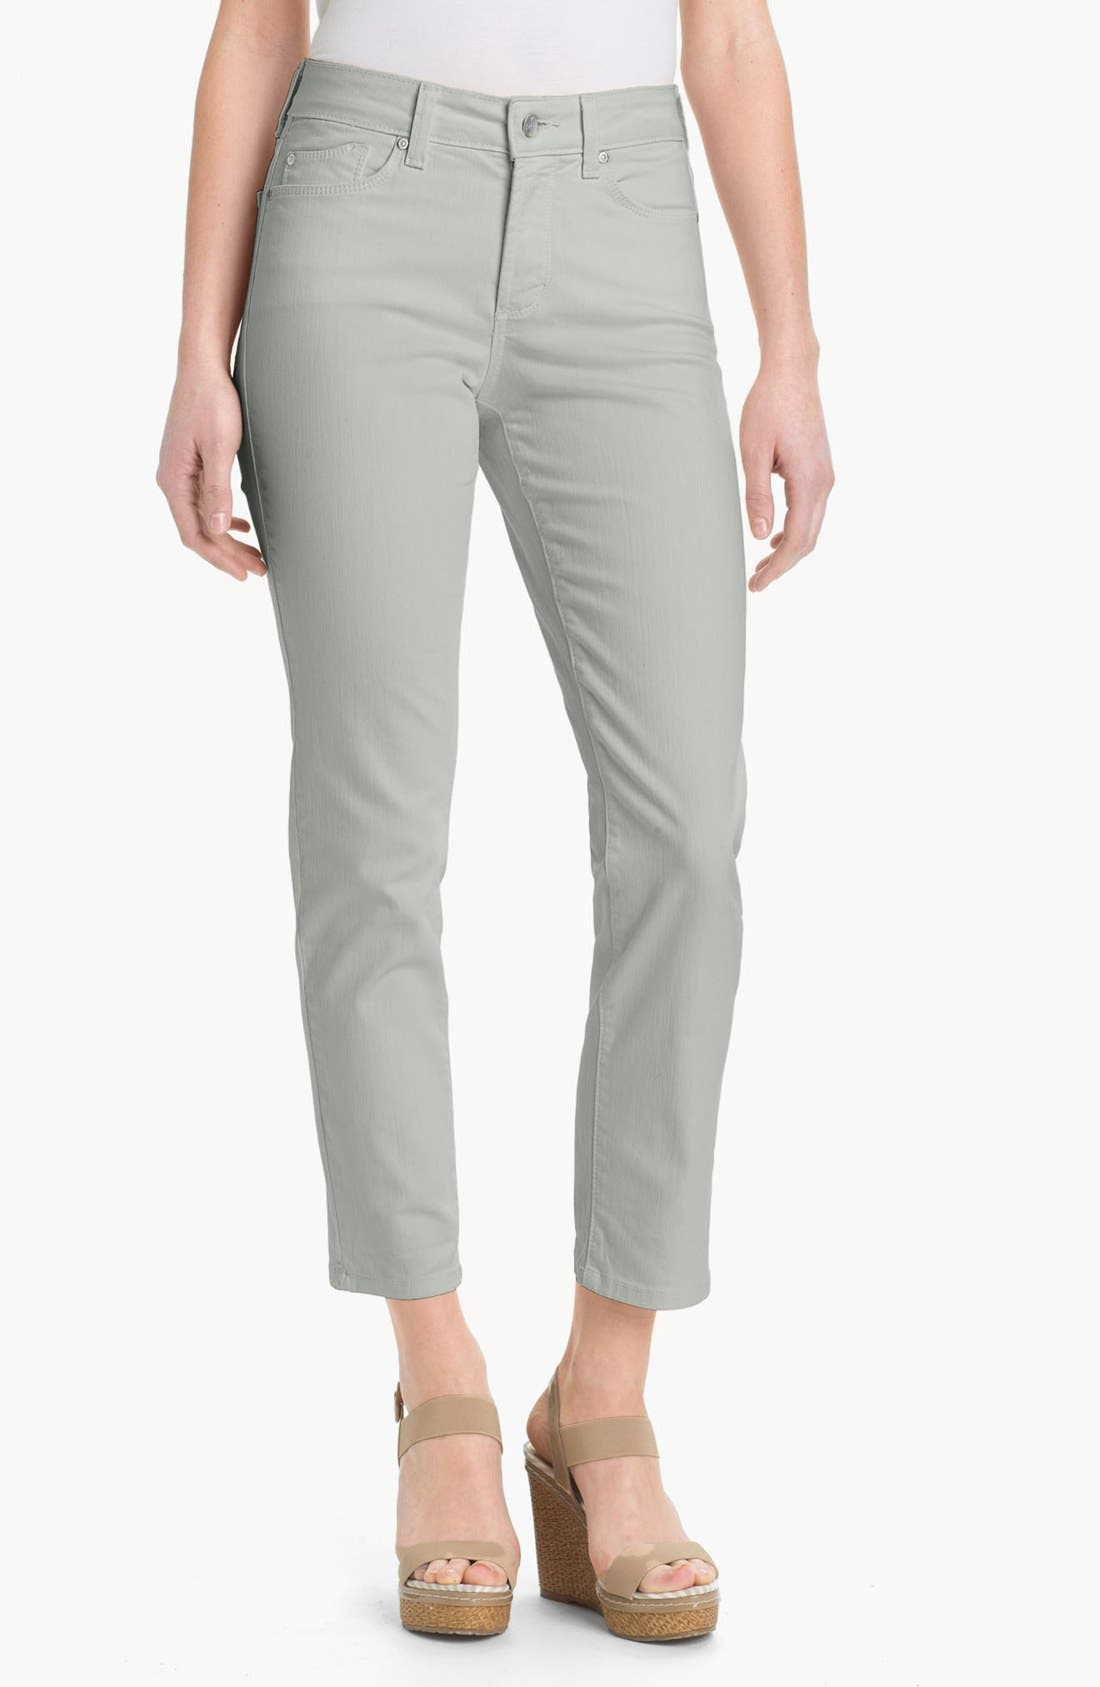 Alternate Image 1 Selected - NYDJ 'Alisha' Skinny Stretch Ankle Jeans (Regular & Petite)